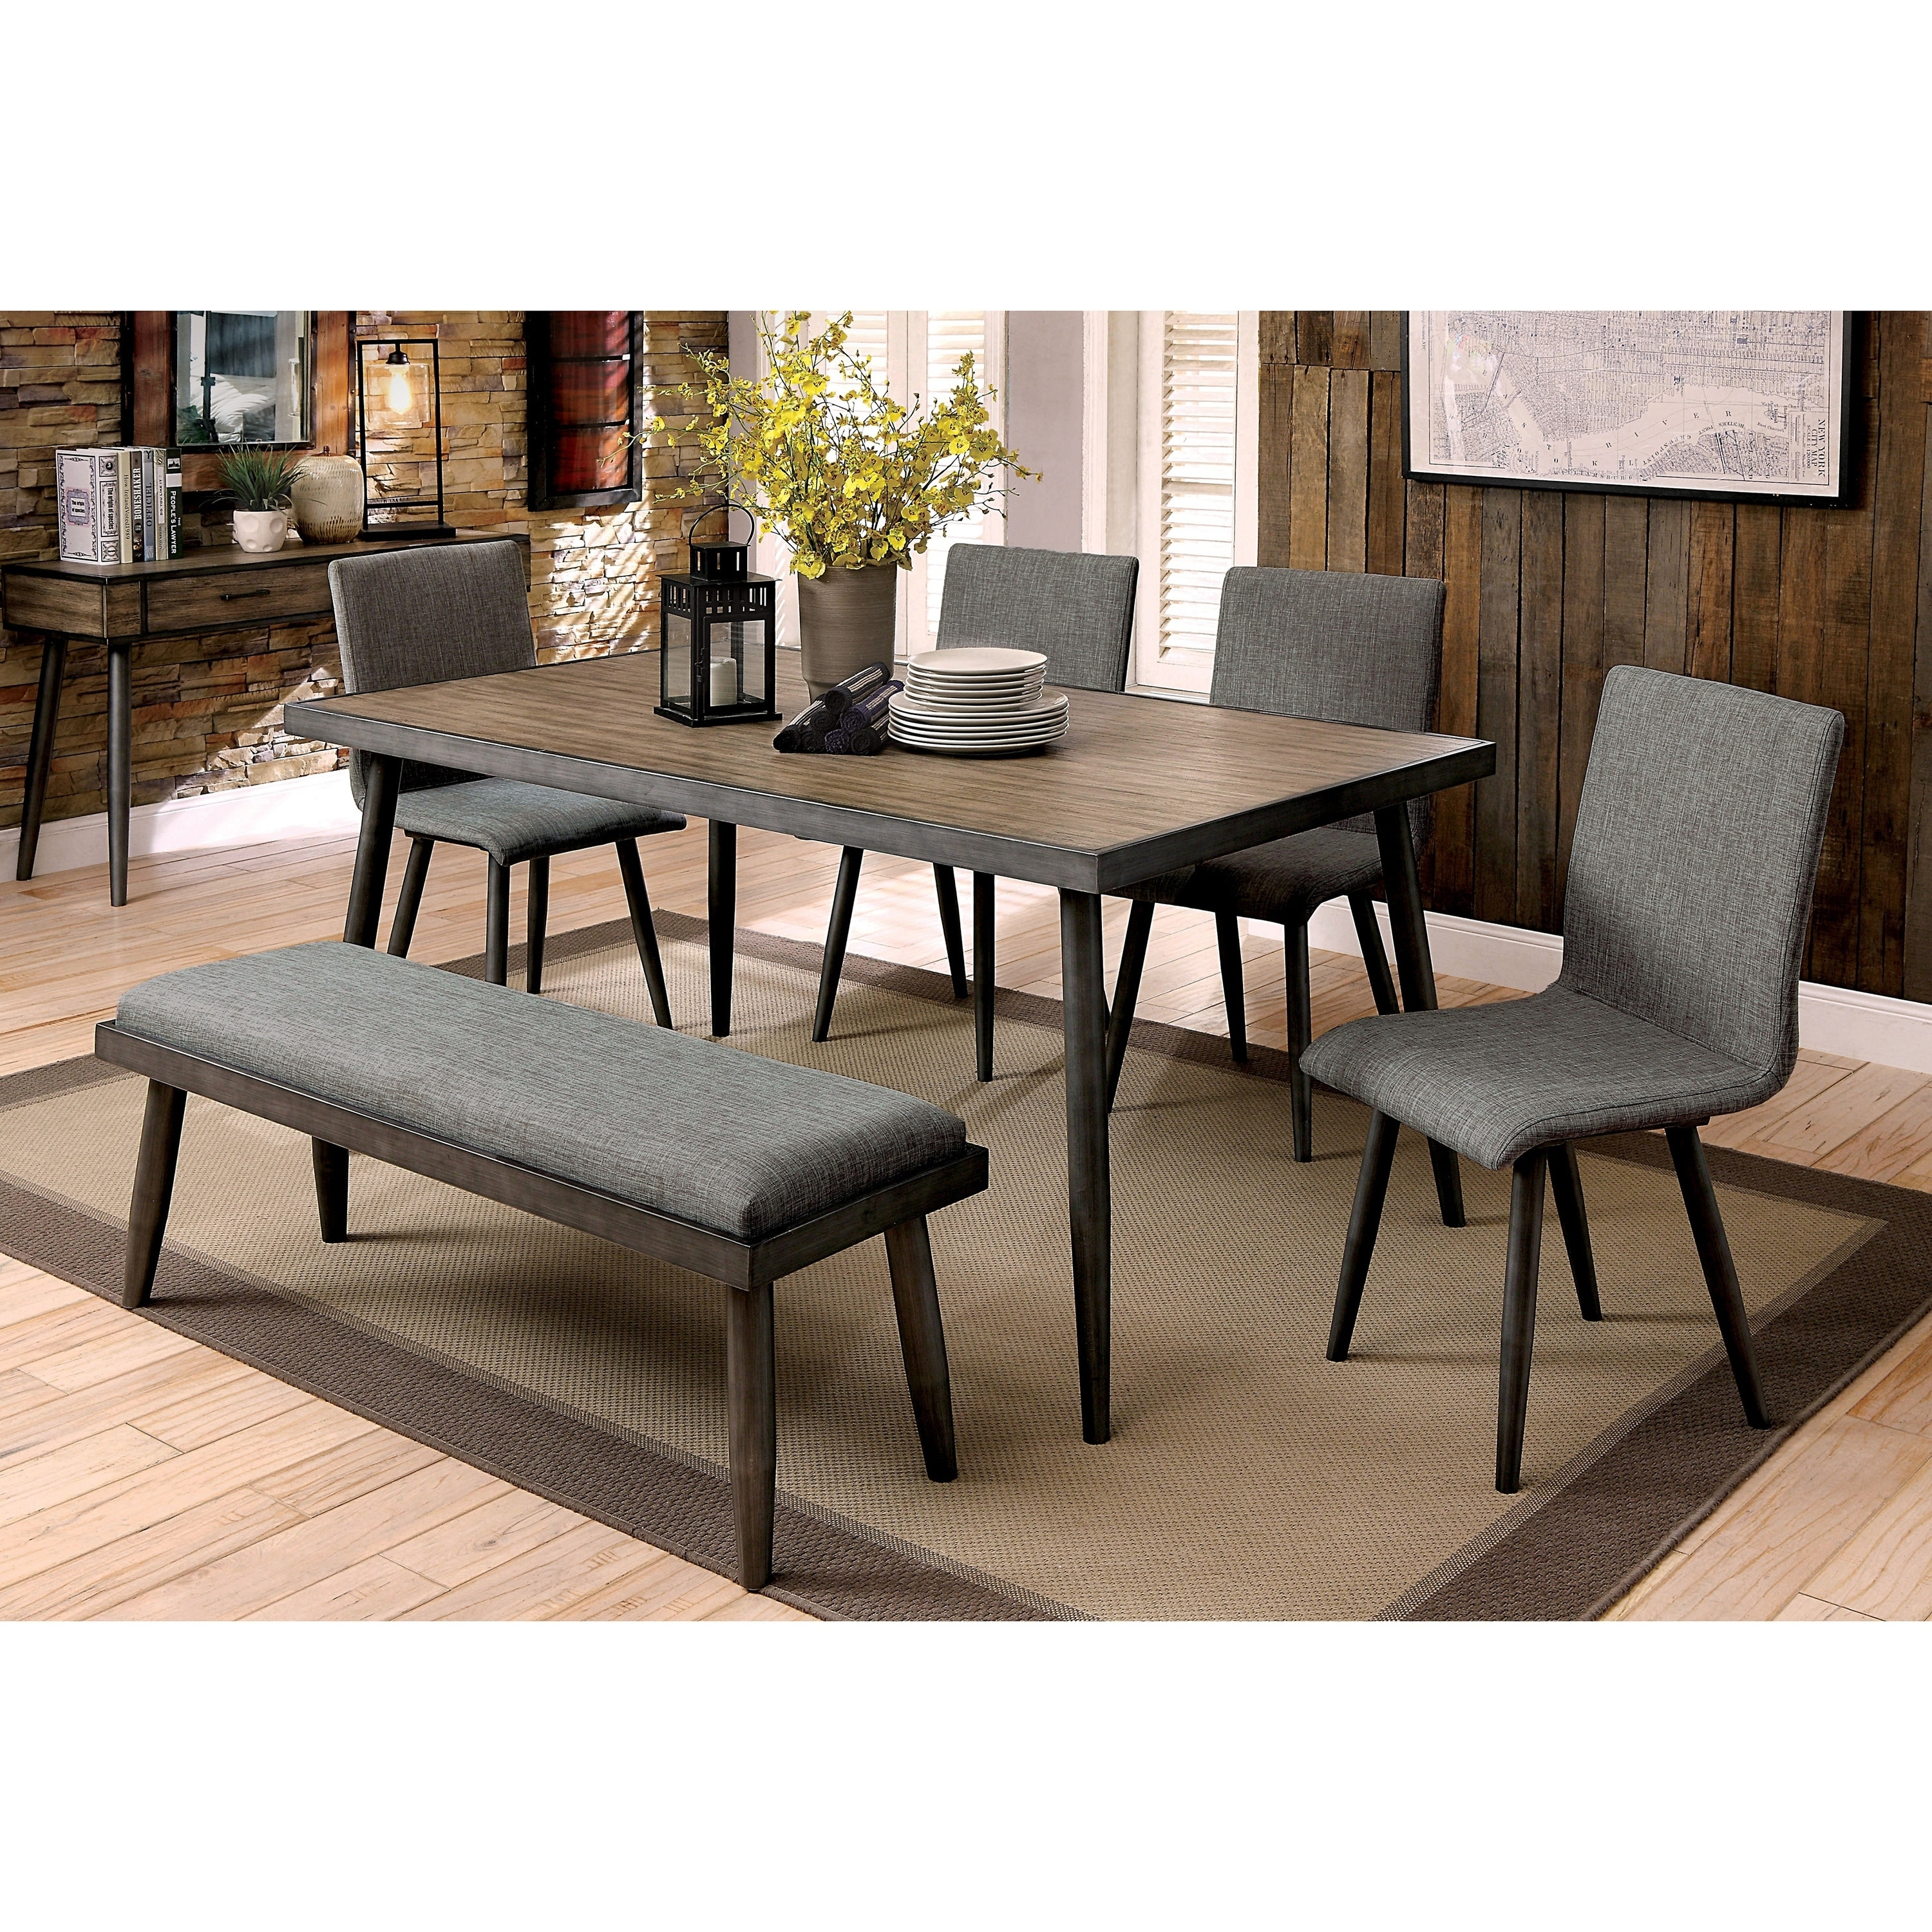 Wondrous Carson Carrington Breisgau 6 Piece Dining Table Set With Bench Gmtry Best Dining Table And Chair Ideas Images Gmtryco